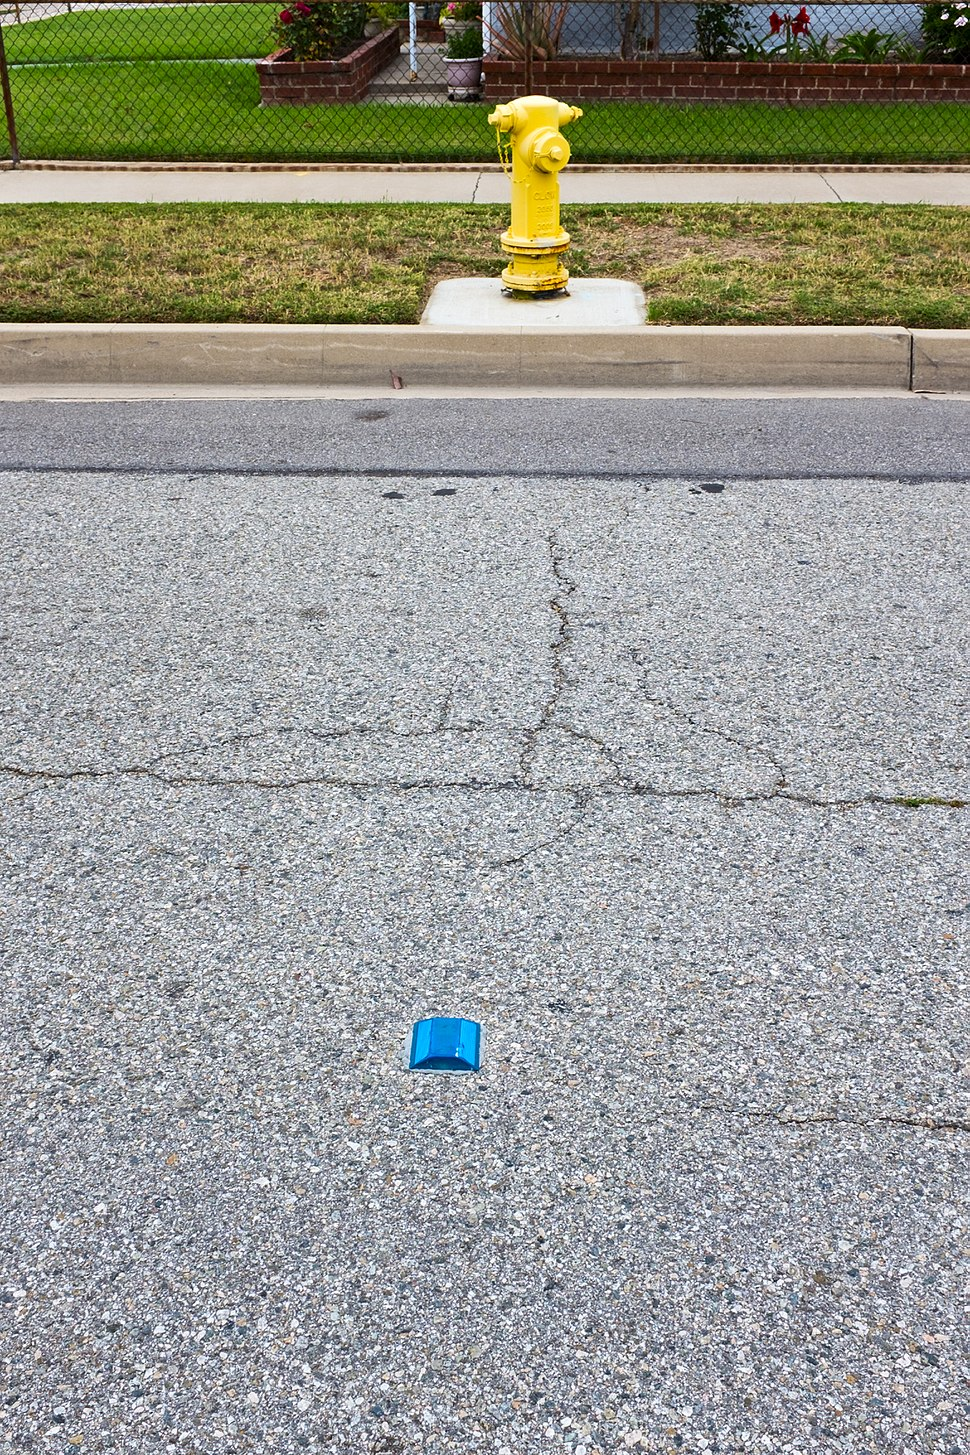 Fire Hydrant and blue reflector